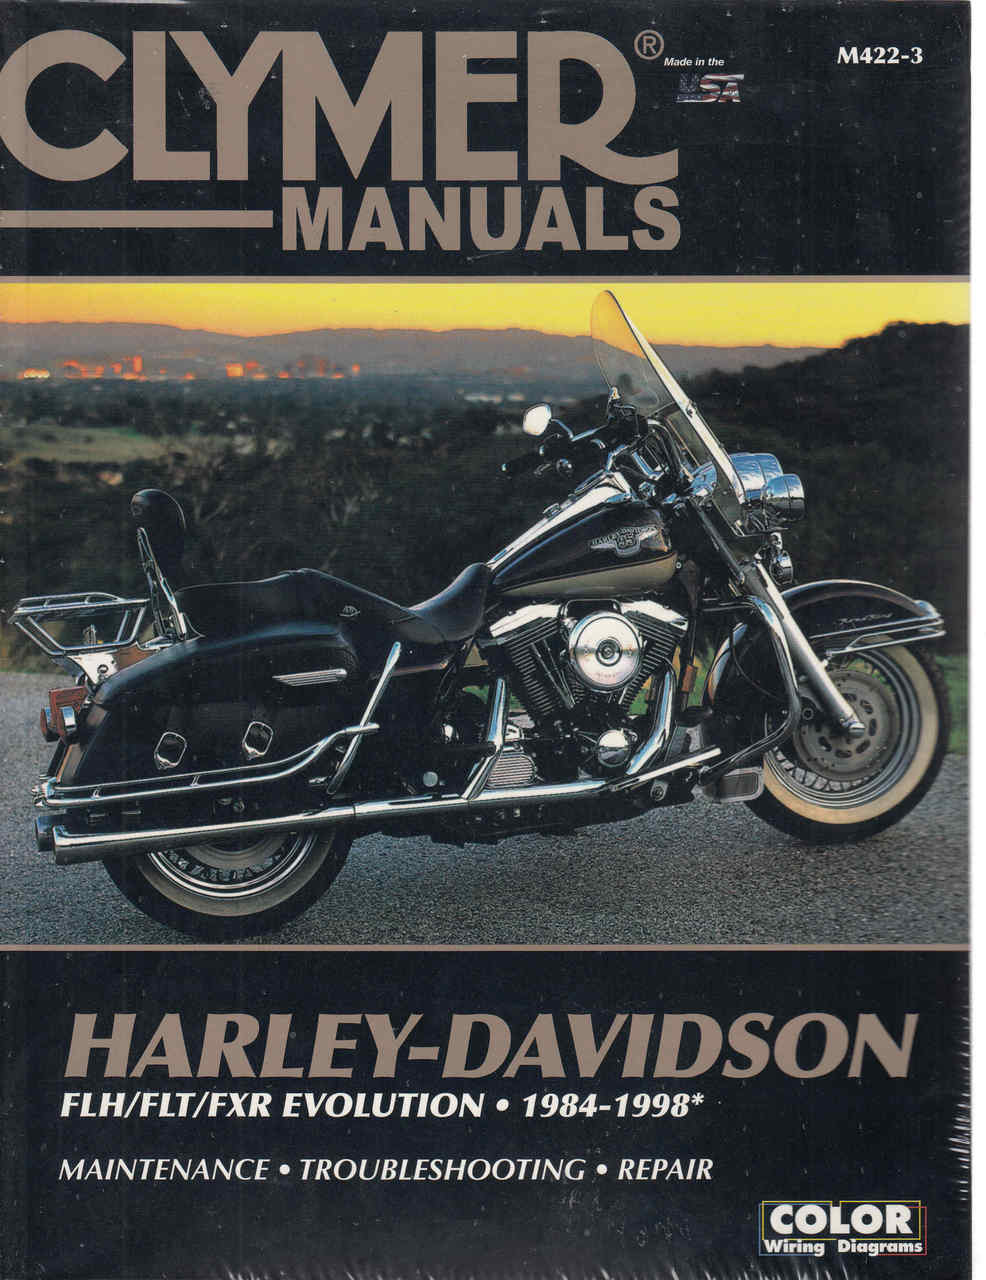 Harley-Davidson FLH FLT FXR Evolution 1984 - 1998 Workshop Manual on